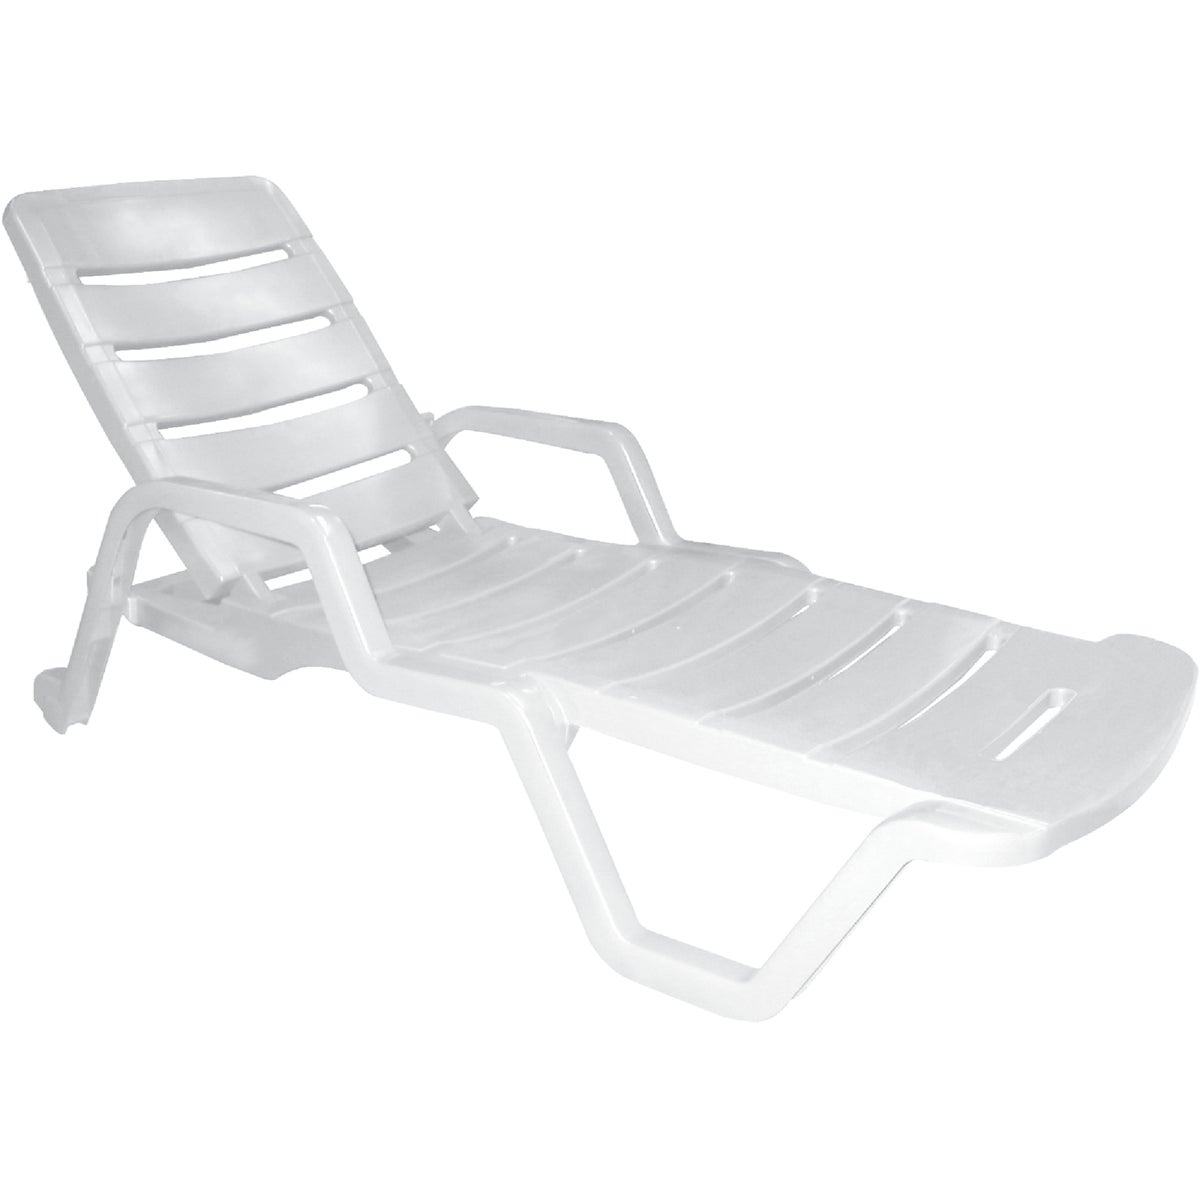 WHITE CHAISE LOUNGE - 8010-48-3700 by Adams Mfg Patio Furn